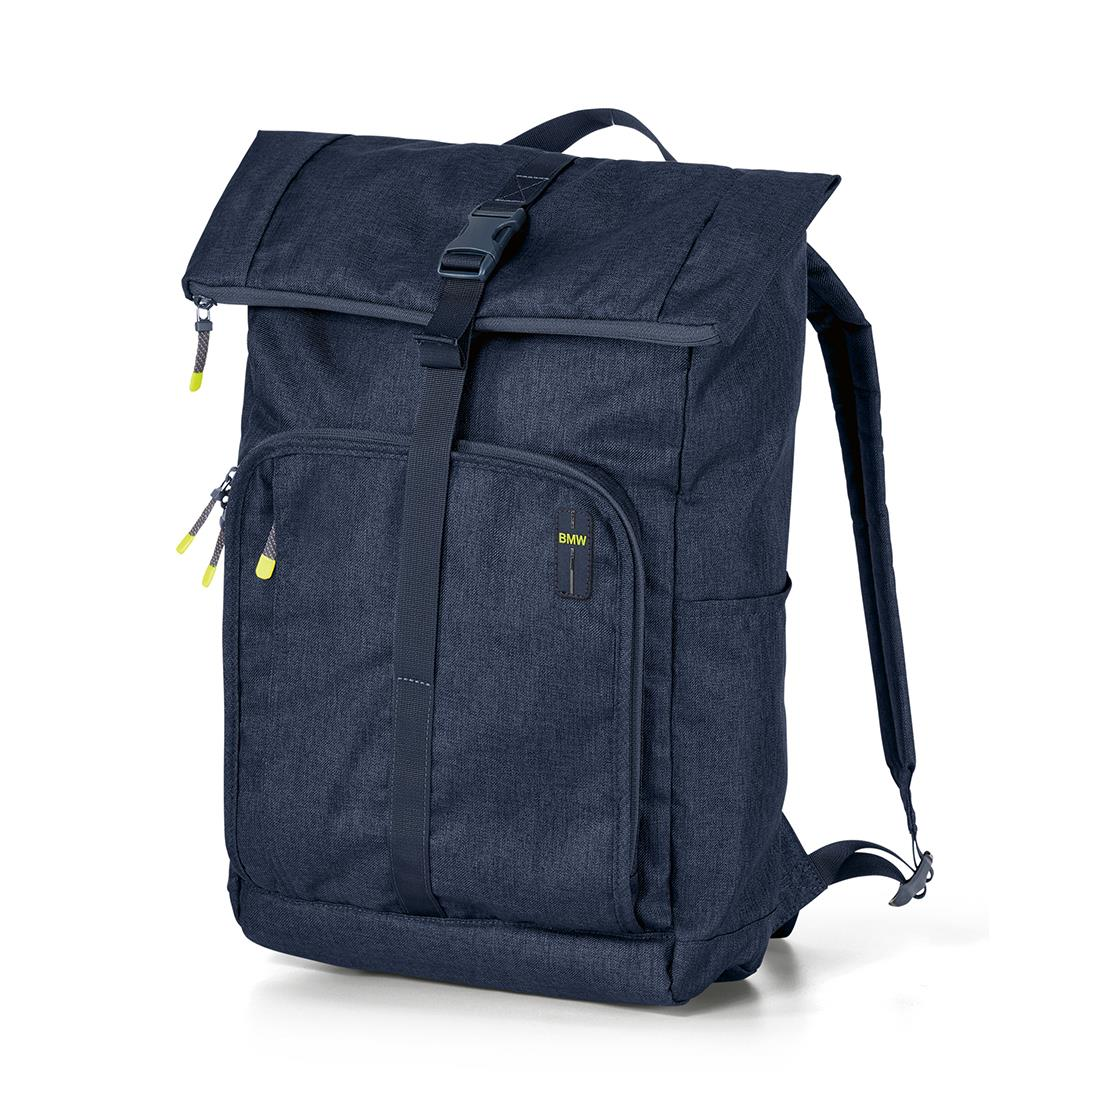 BMW Active City Backpack Functional